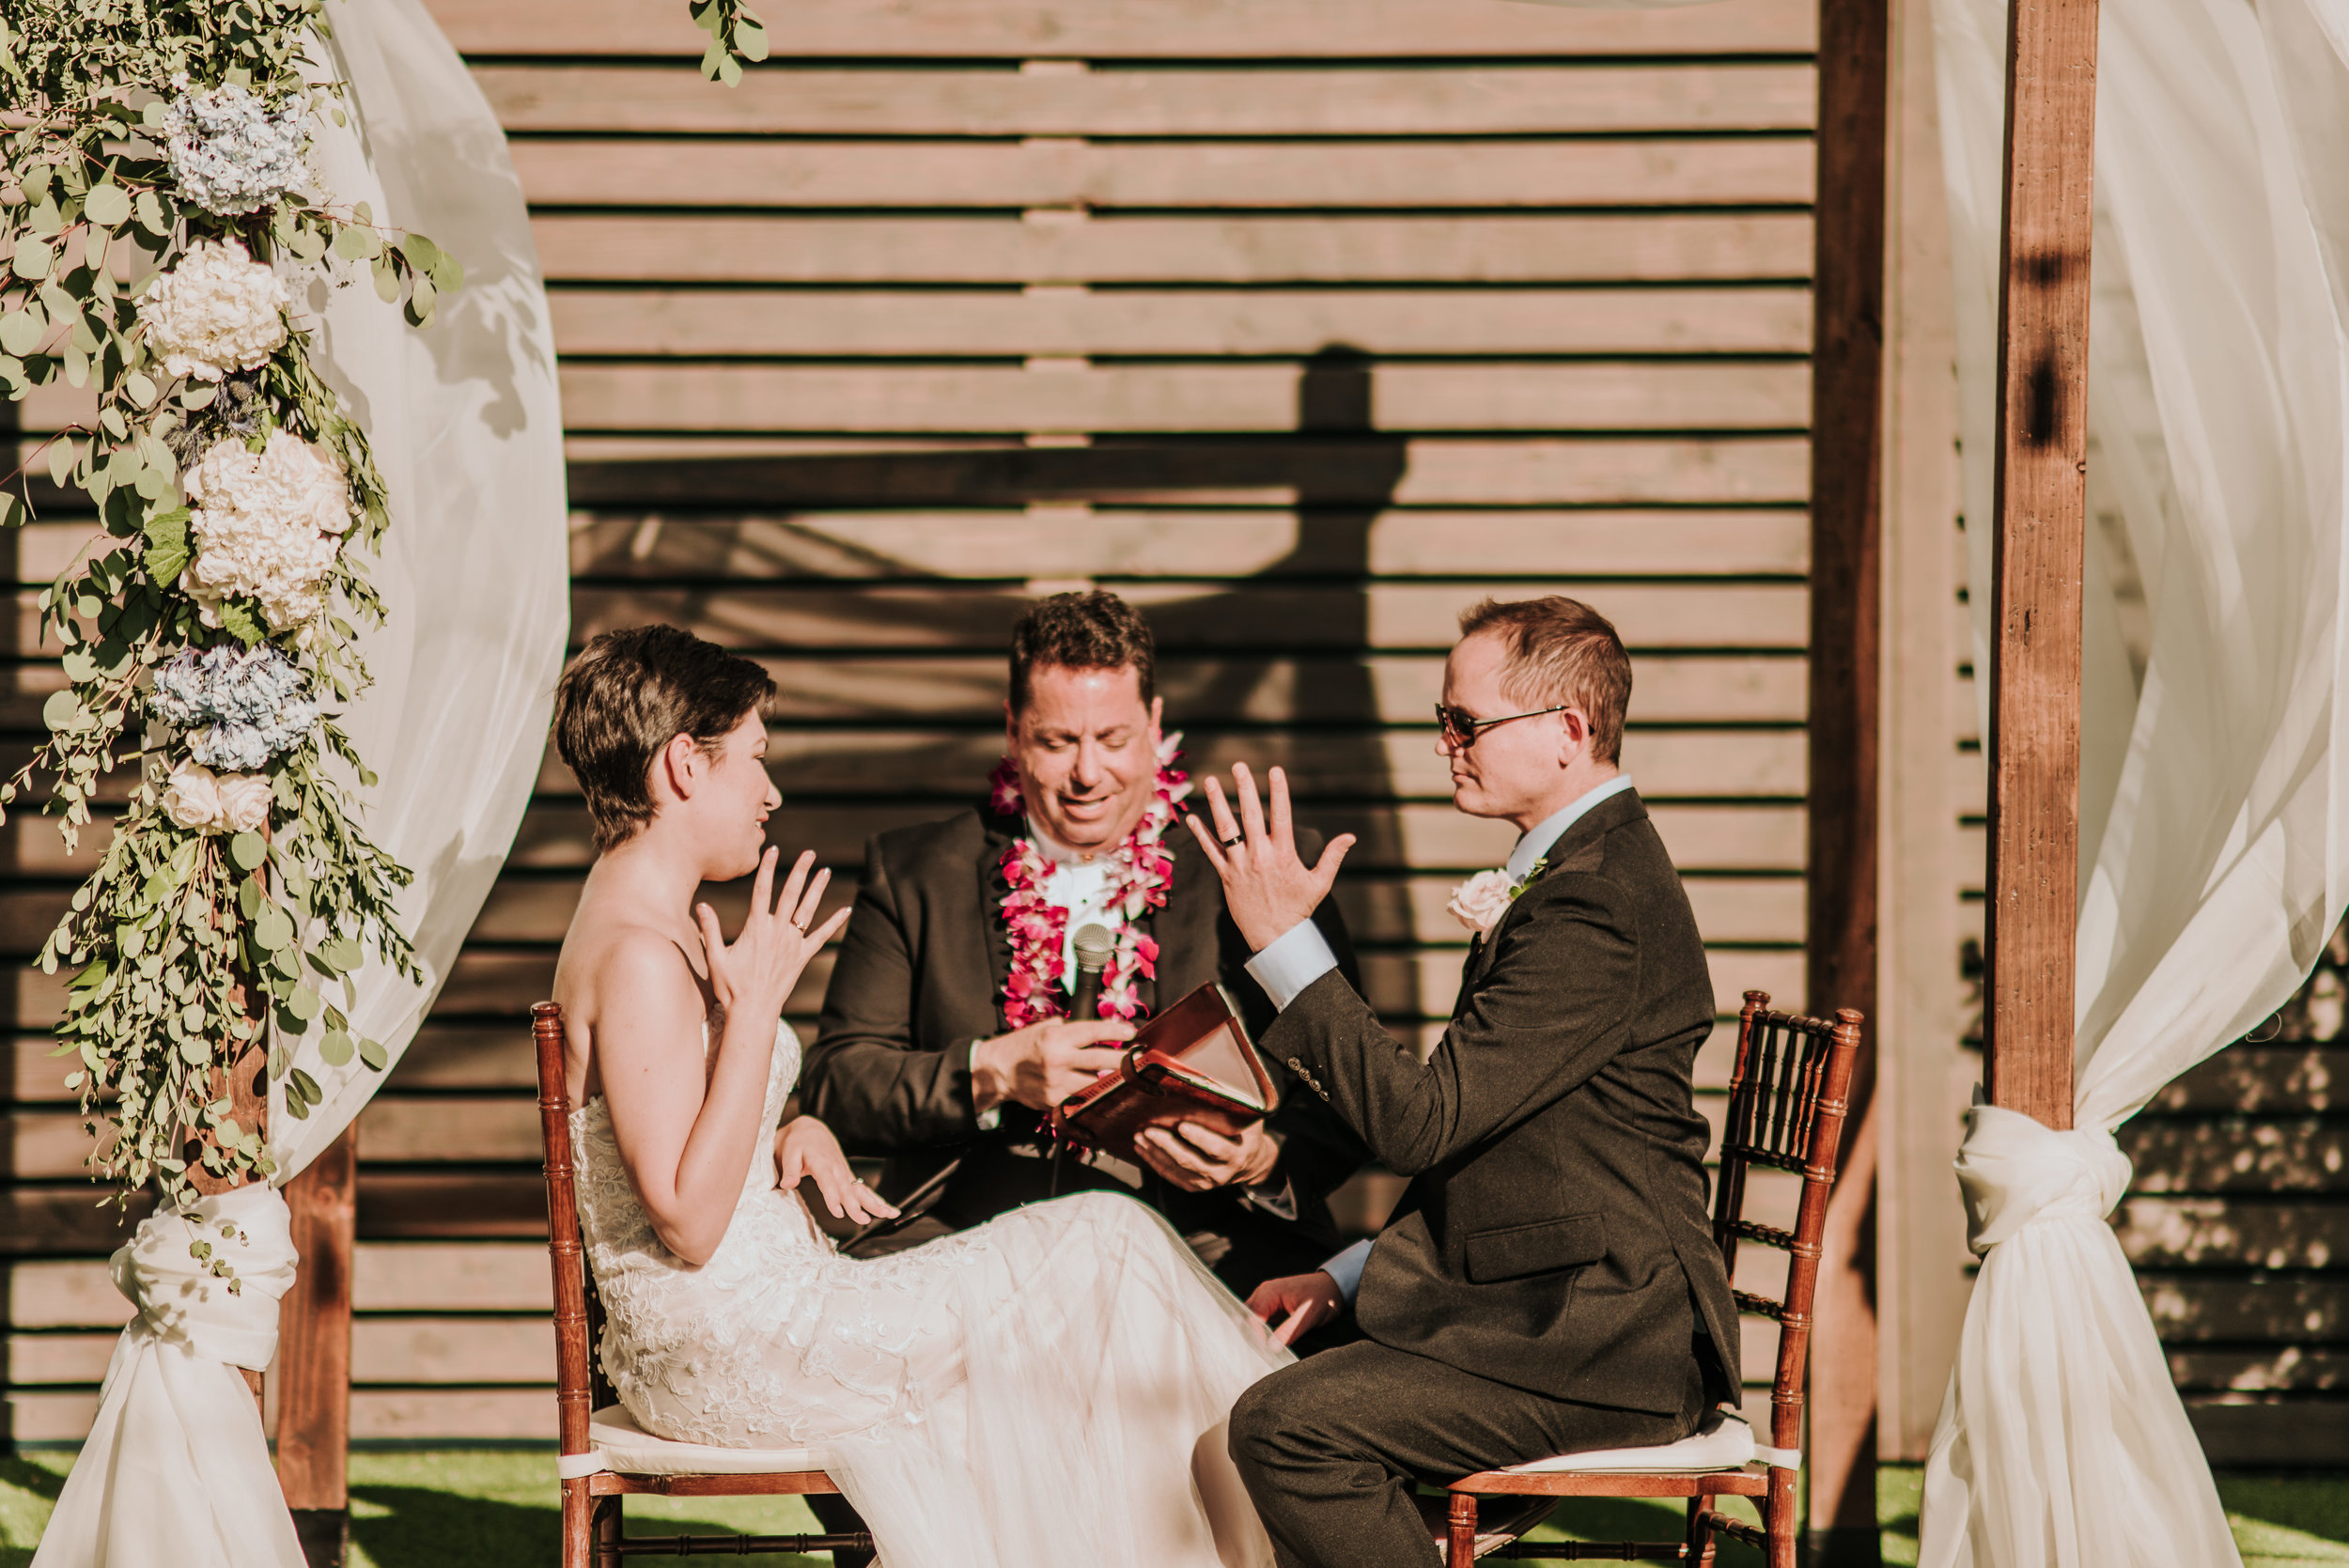 2019-07-21_Danielle_and_Brandon_-_Married_-_Costa_Mesa-458.jpg